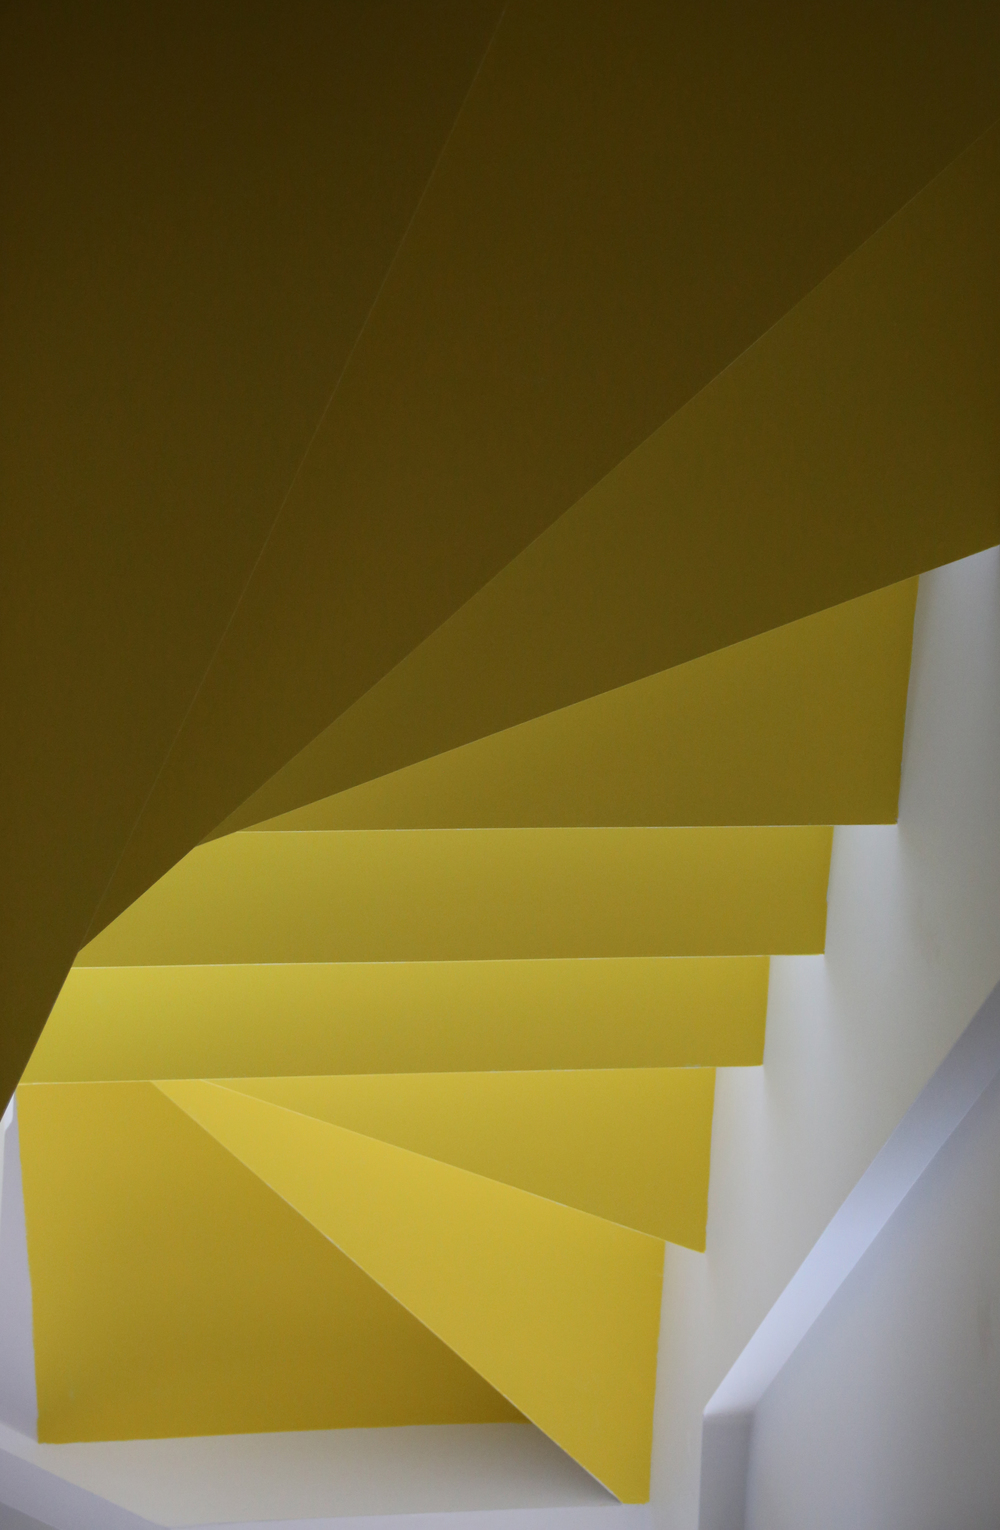 stairs-art-yellow-architecture.jpg